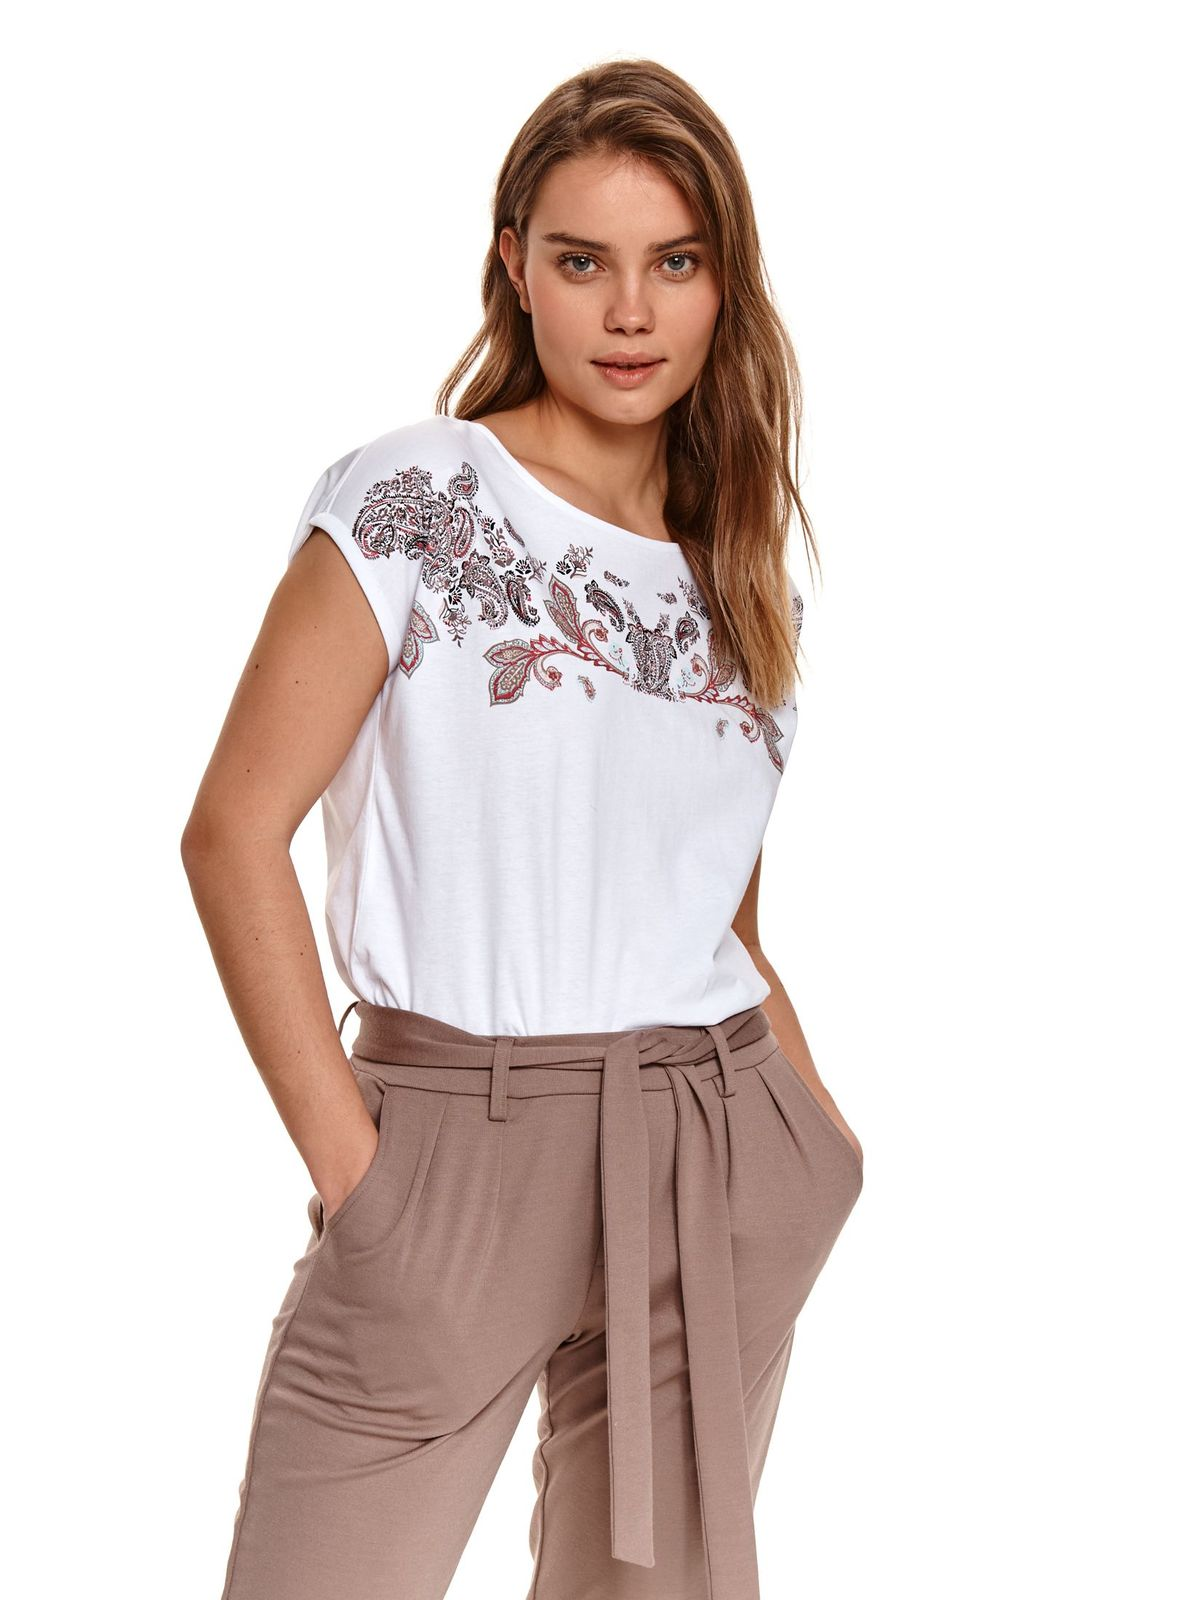 White women`s blouse casual with floral print thin fabric with rounded cleavage